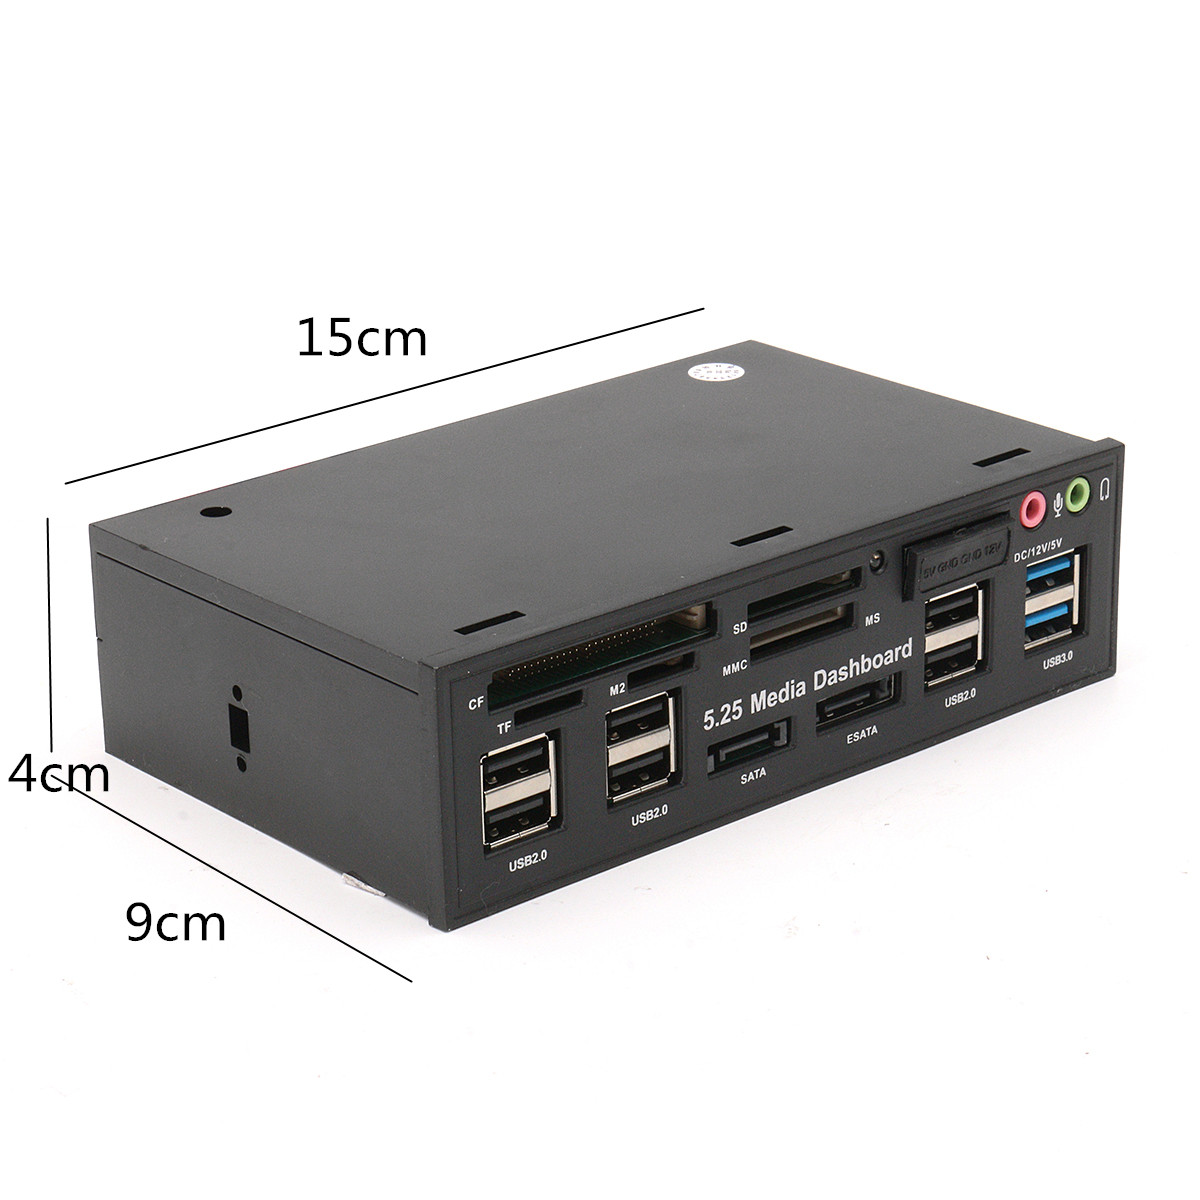 5.25 Inch USB3.0 Drive Bay SD TF Card Reader SATA USB Hub Audio Front Panel Media Dashboard